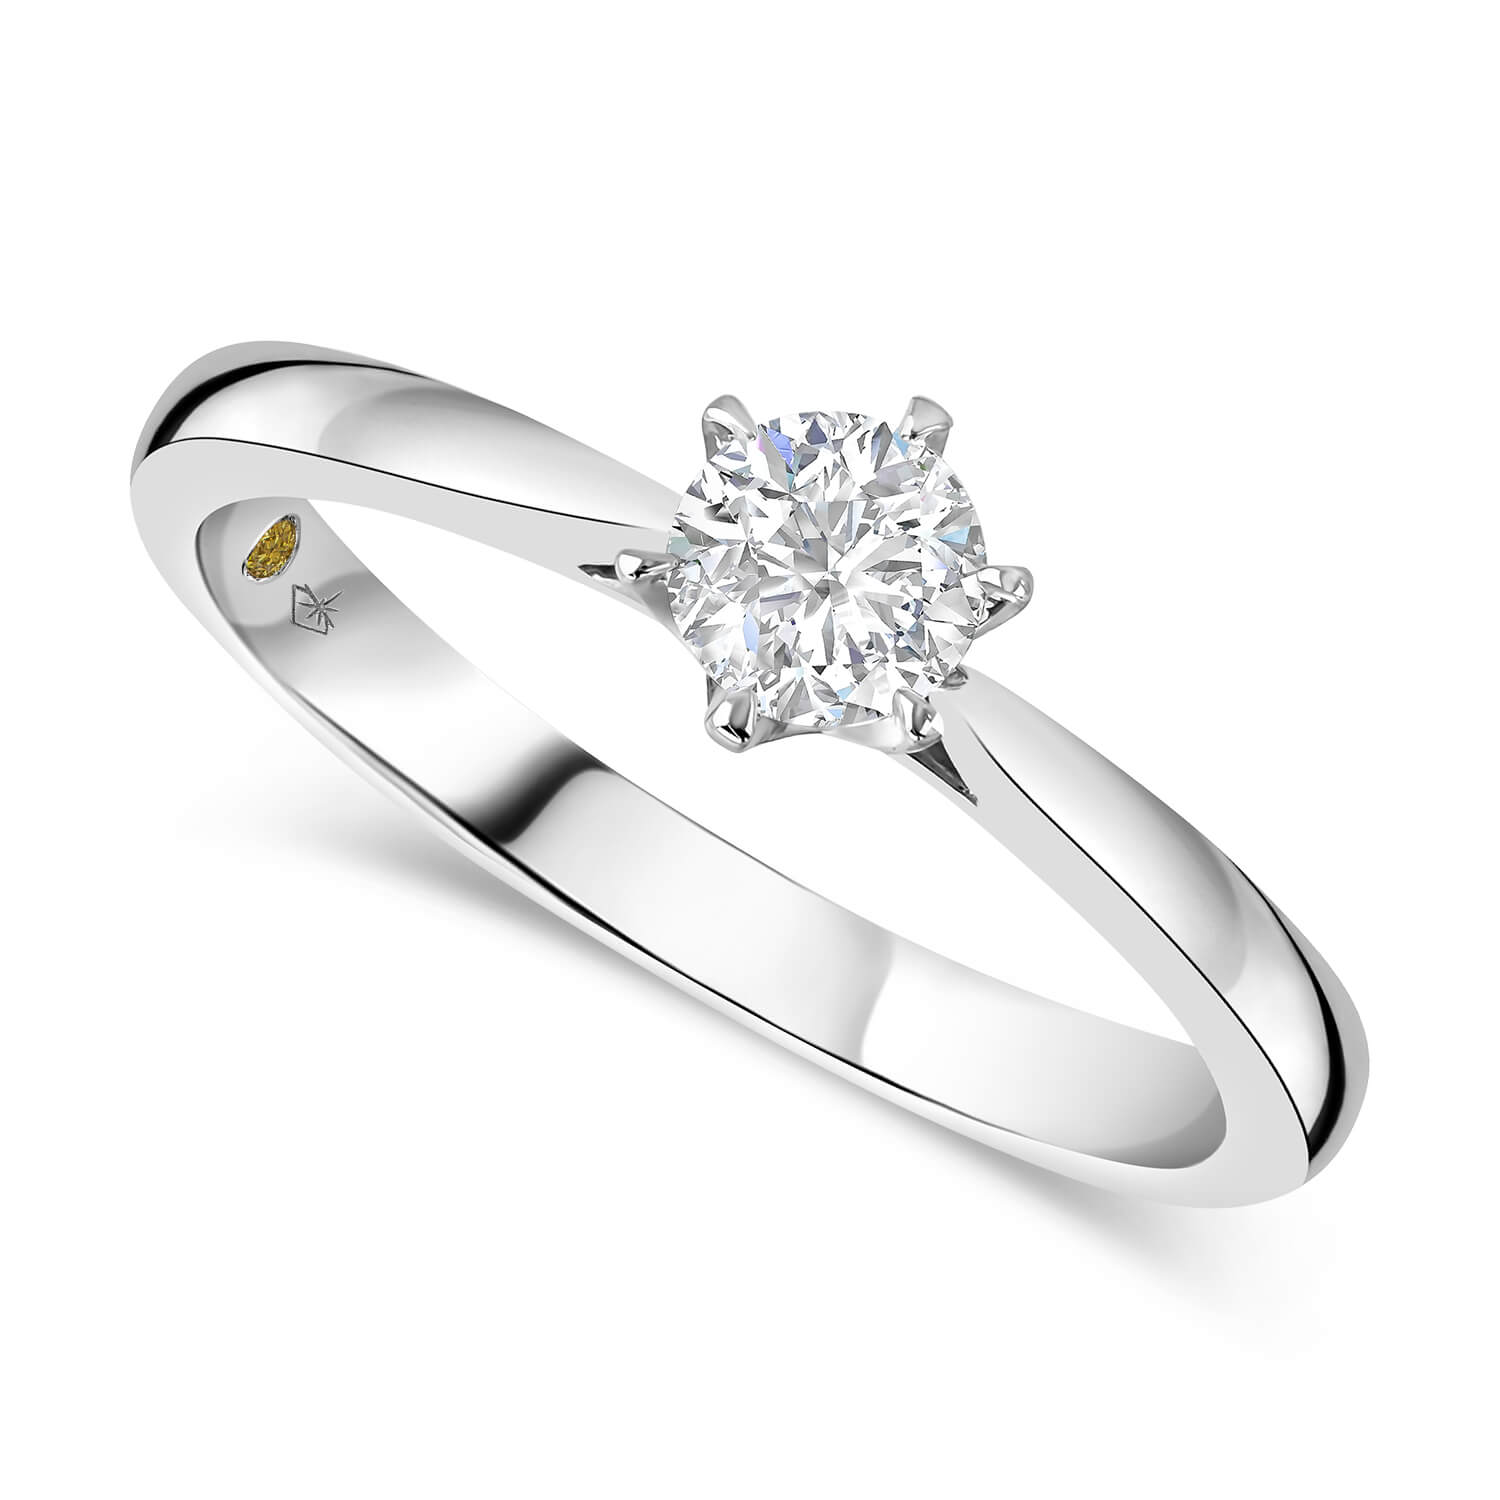 Northern Star 18ct White Gold 0.40ct Diamond Six Claw Solitaire Ring